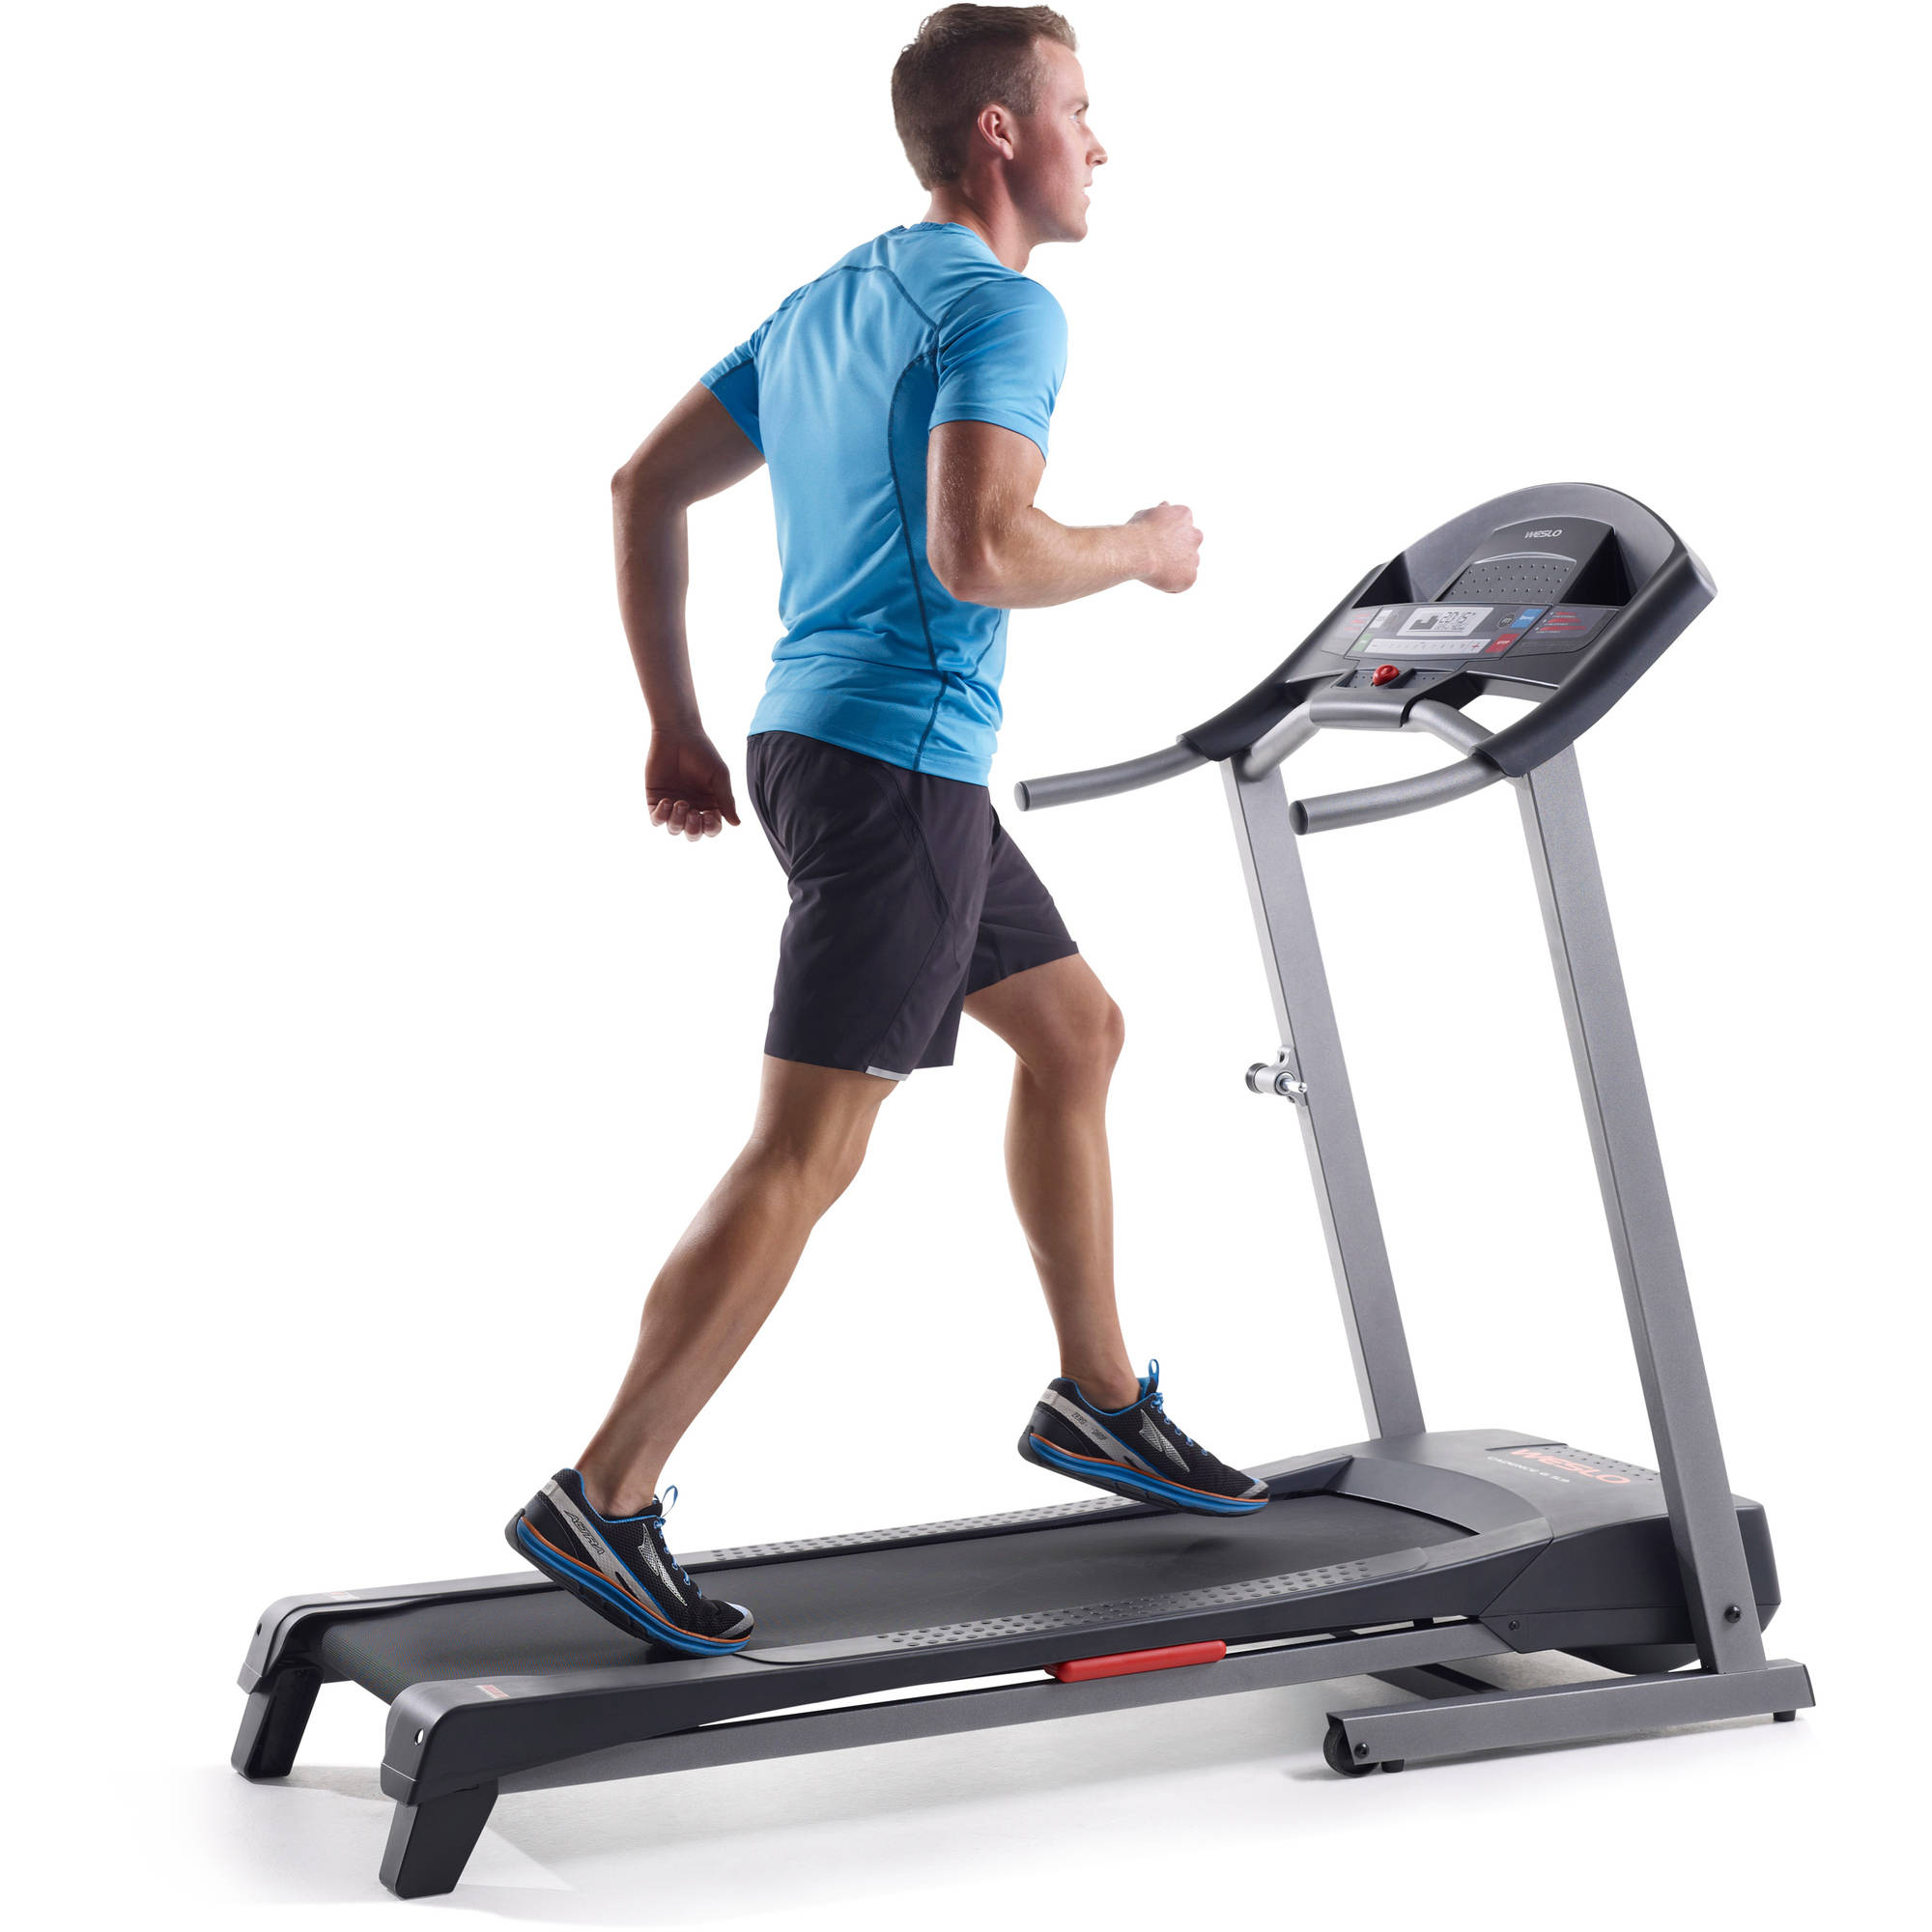 Weslo Cadence G 5.9i Folding Electric Treadmill